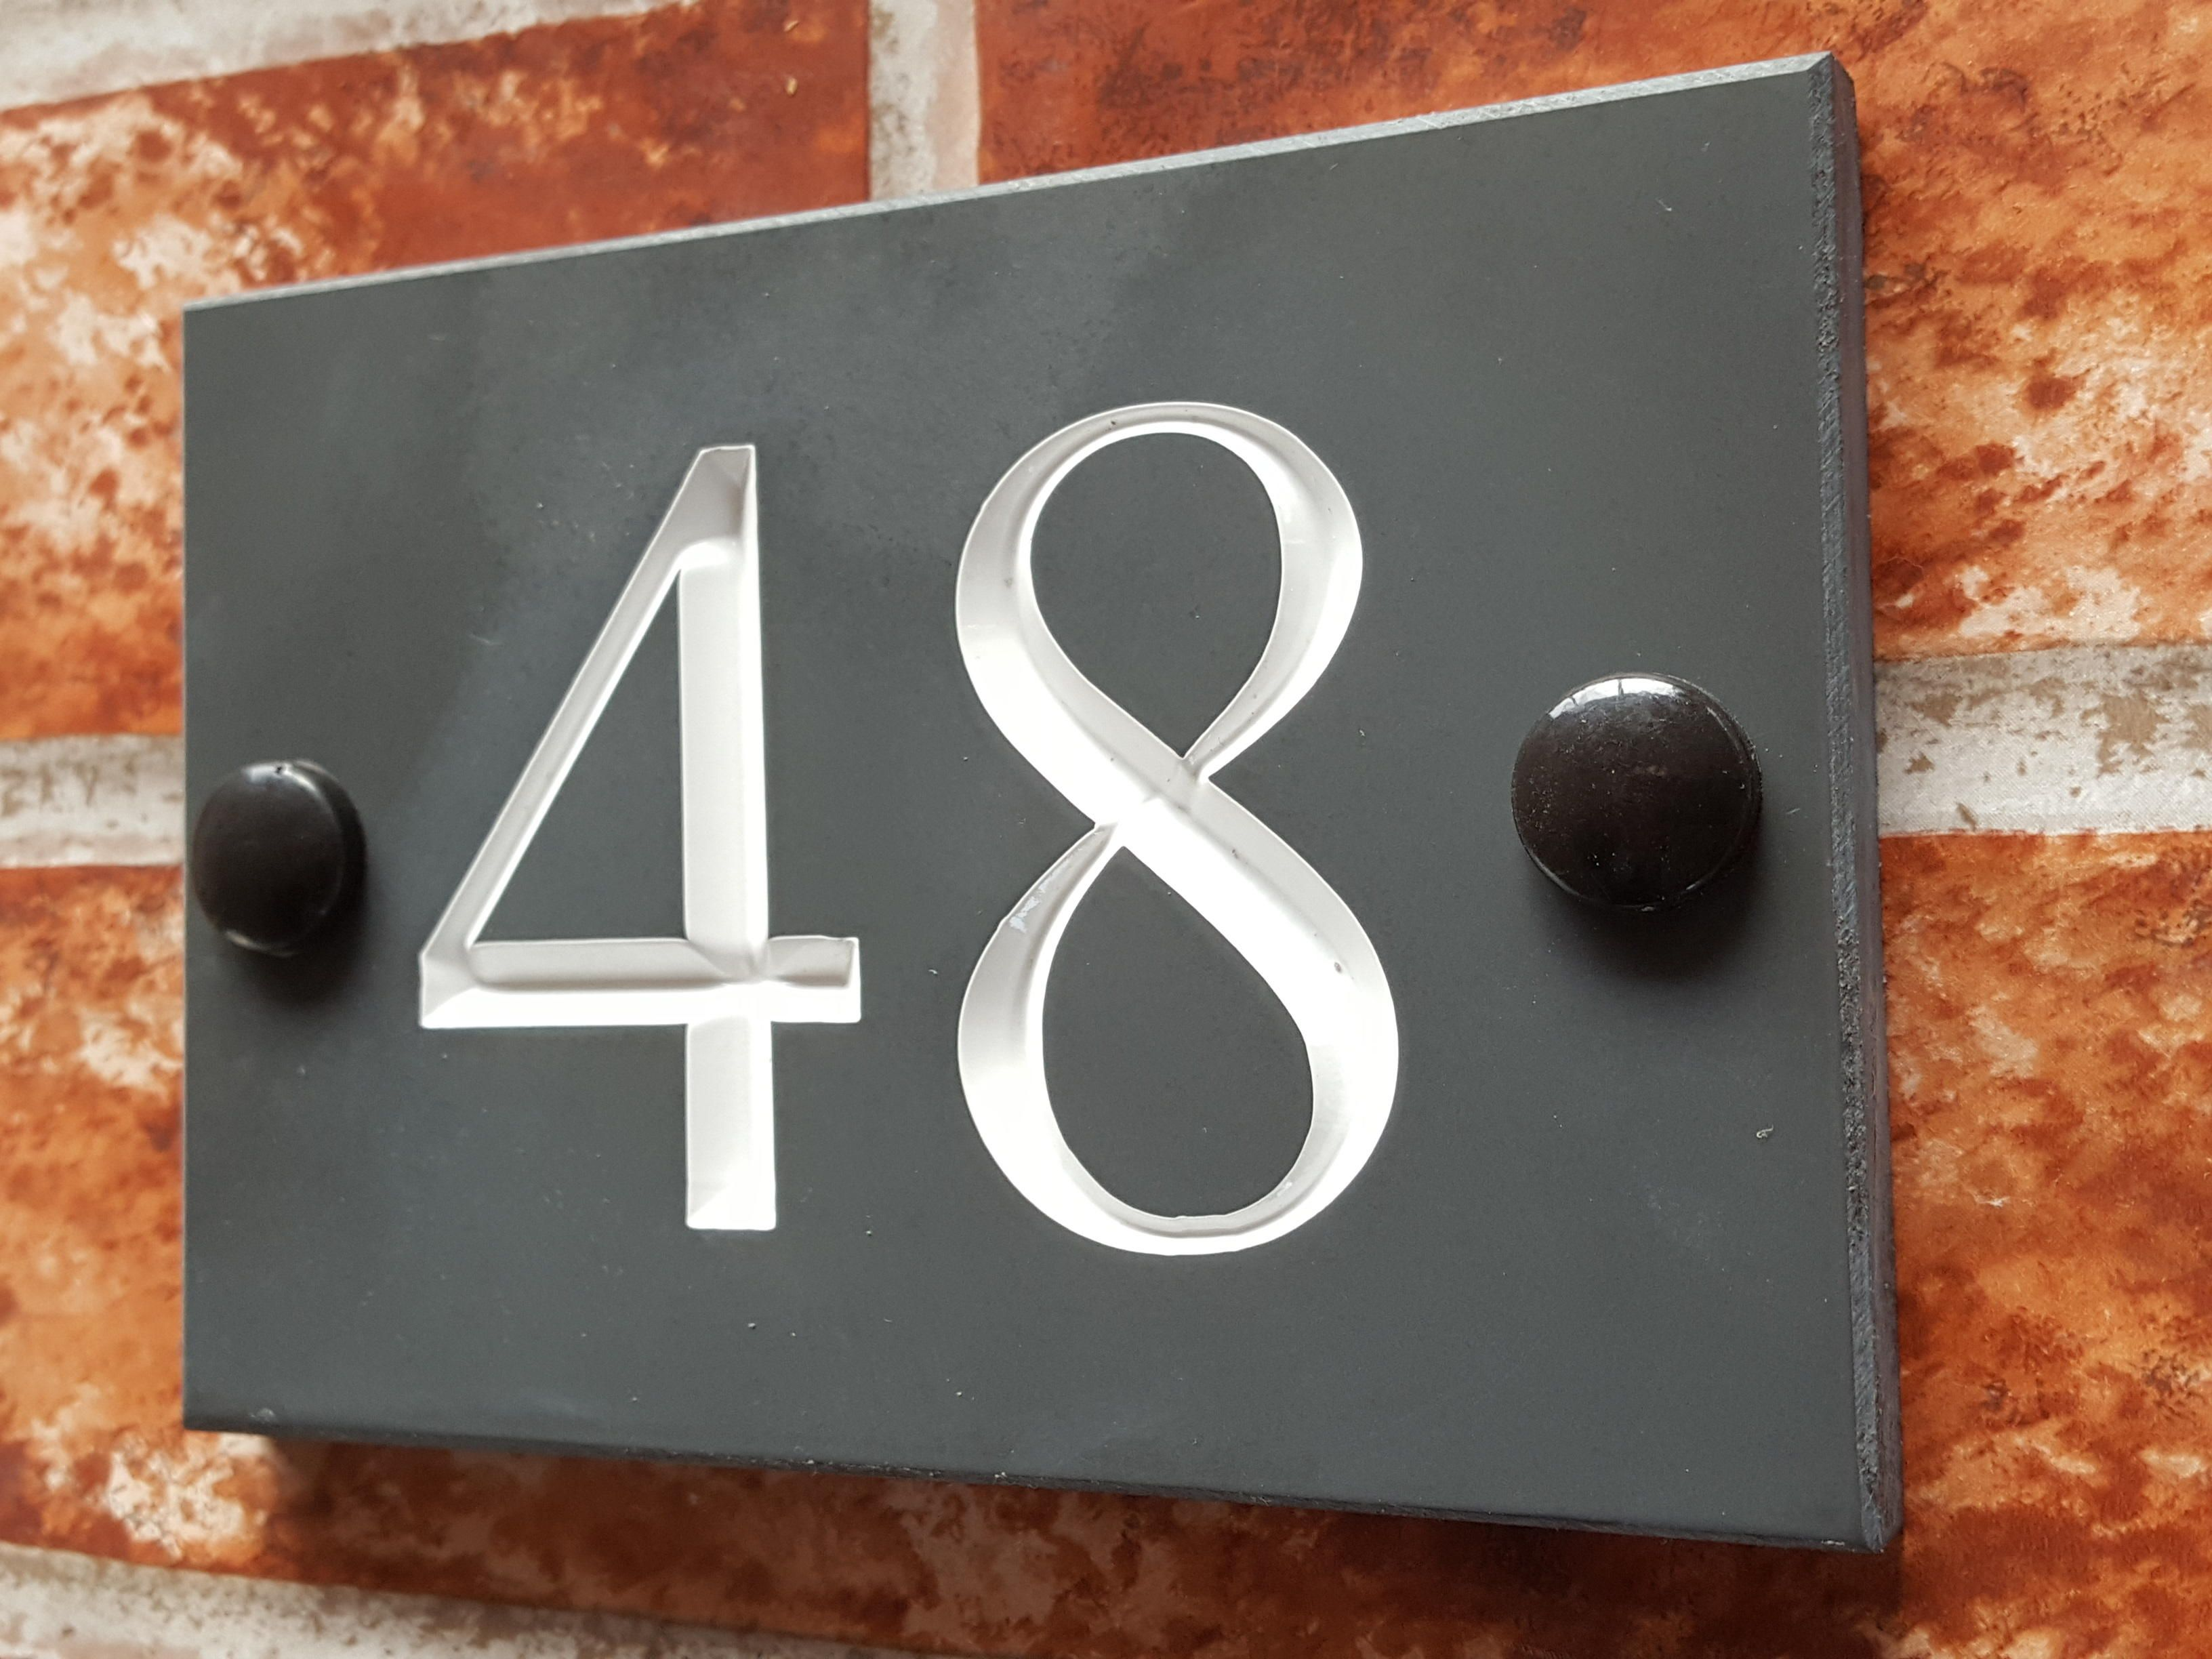 cfdac6561103 Deep v-carve engraved house number plaque at a budget priceAffordable engraved  slate house numbers. Available in Times Roman font with a white inlay.